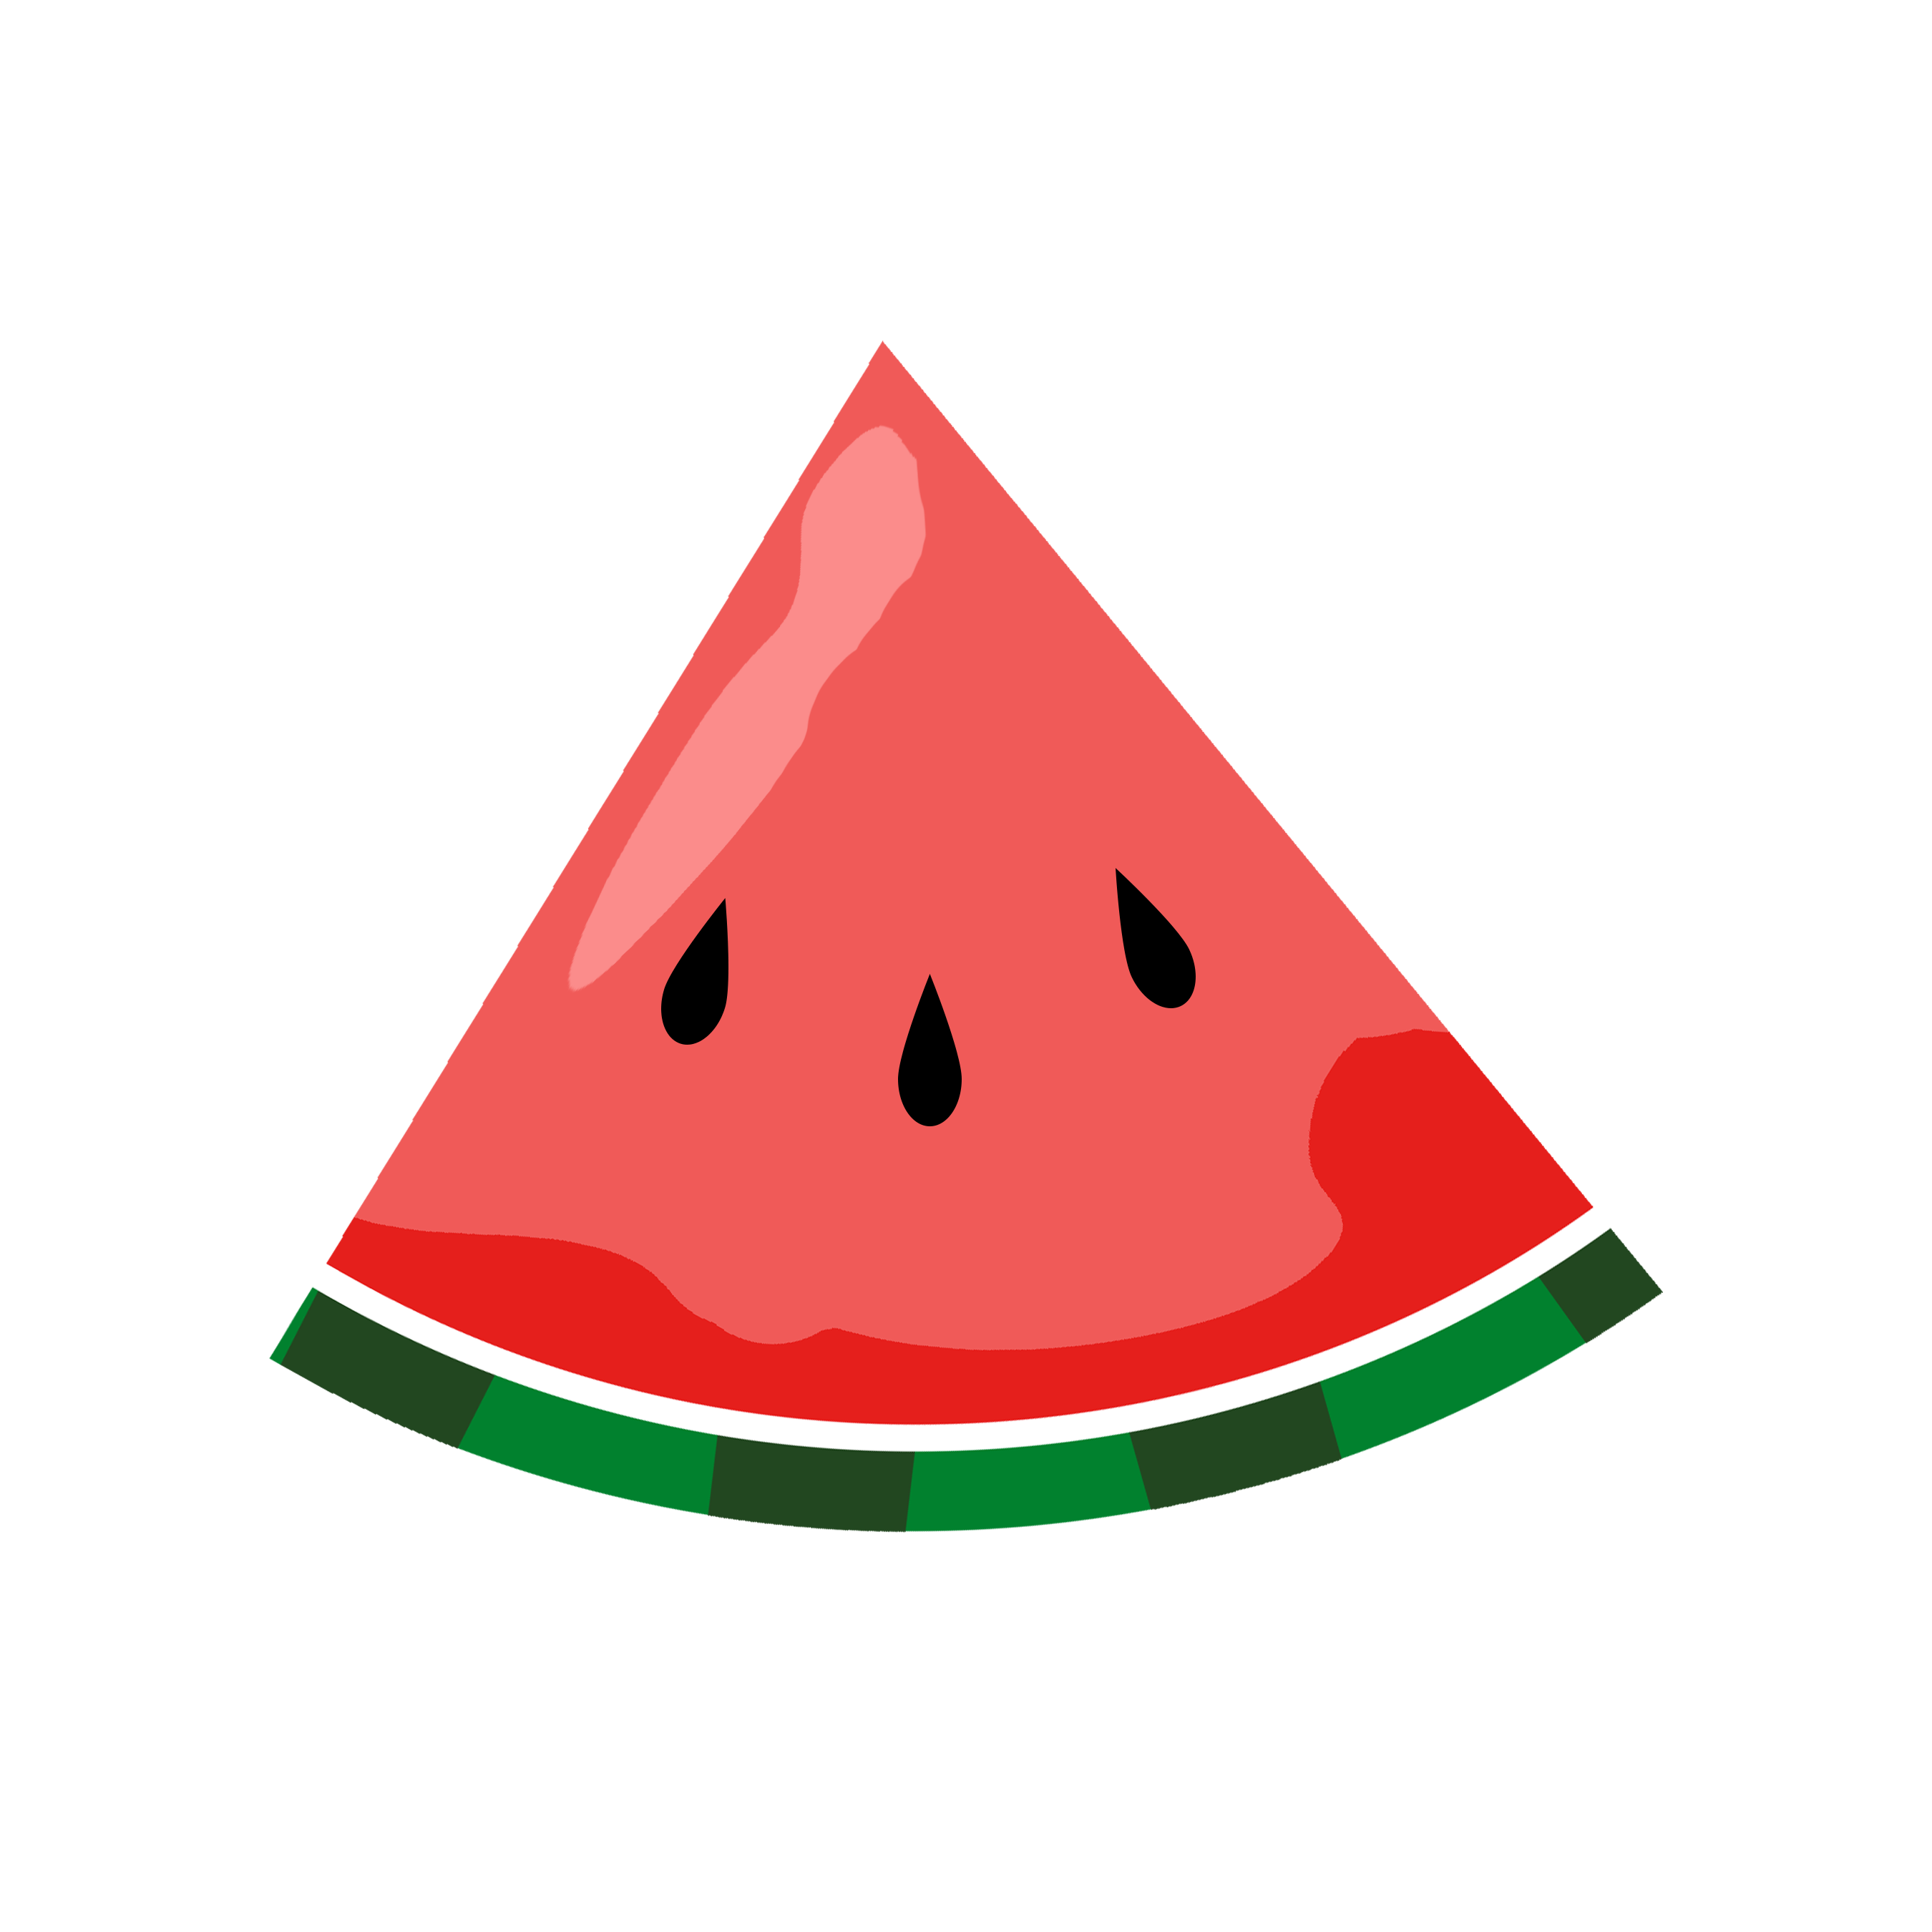 Watermelon clipart border. Play the very hungry